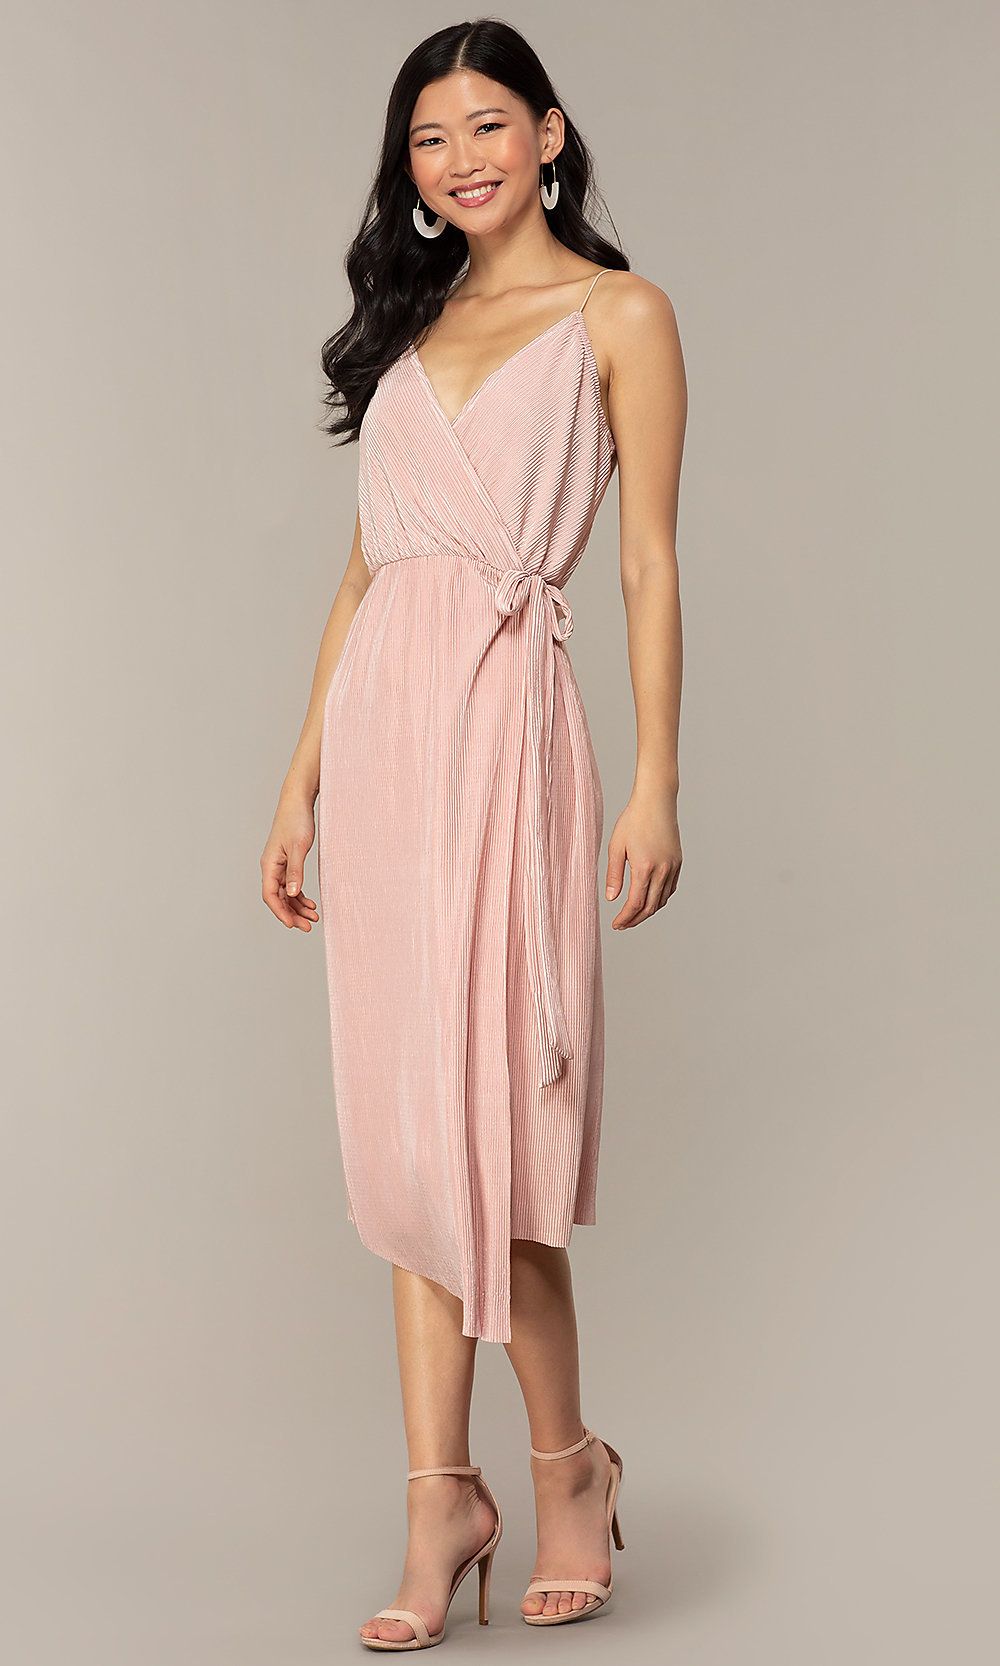 official shop where to buy picked up Knee-Length Silk Wrap Wedding-Guest Dress in Blush